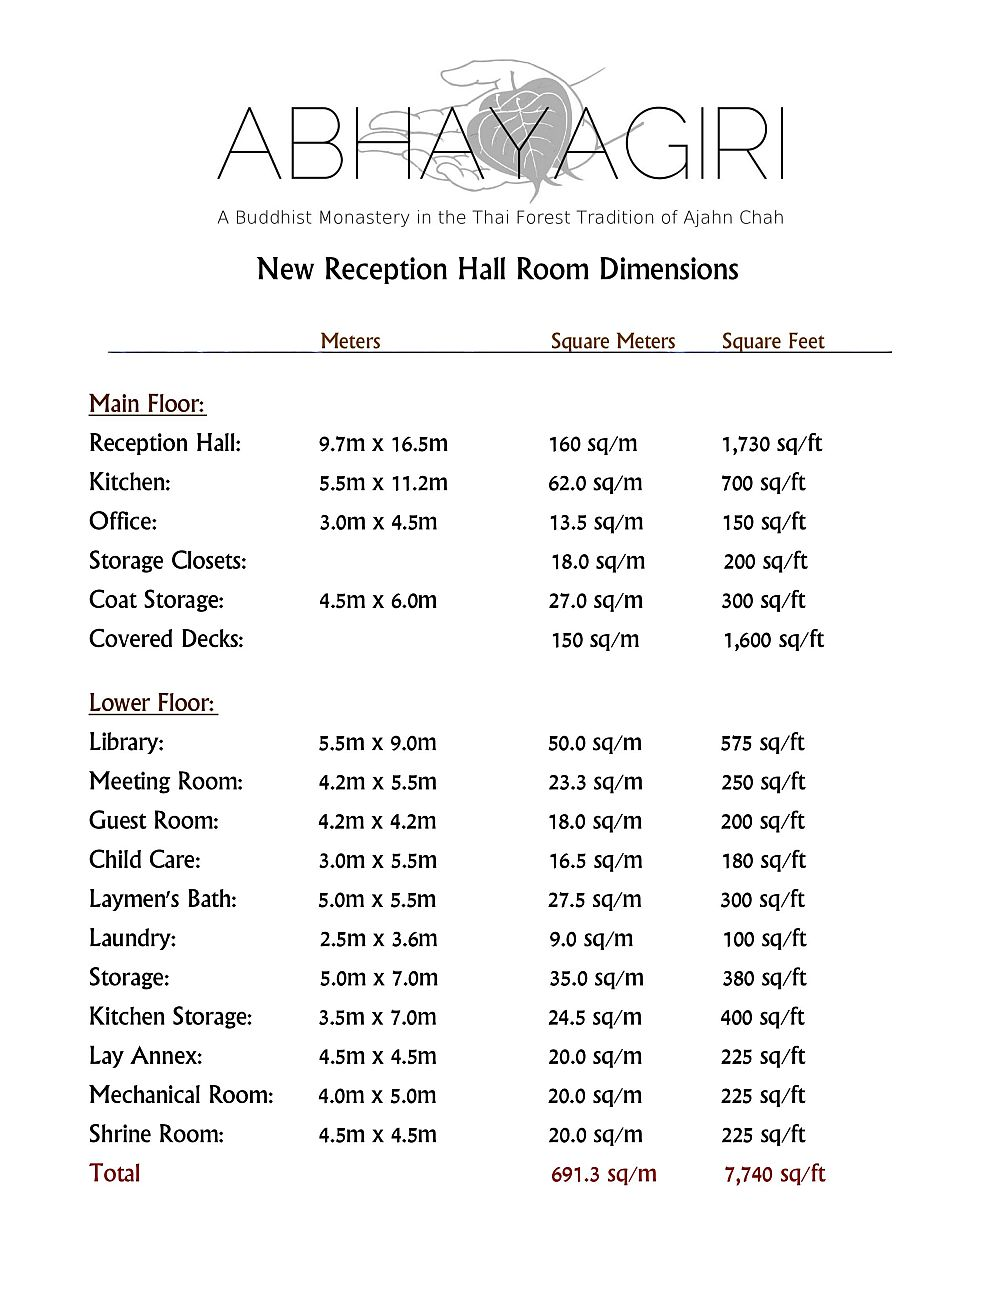 Reception hall dimensions